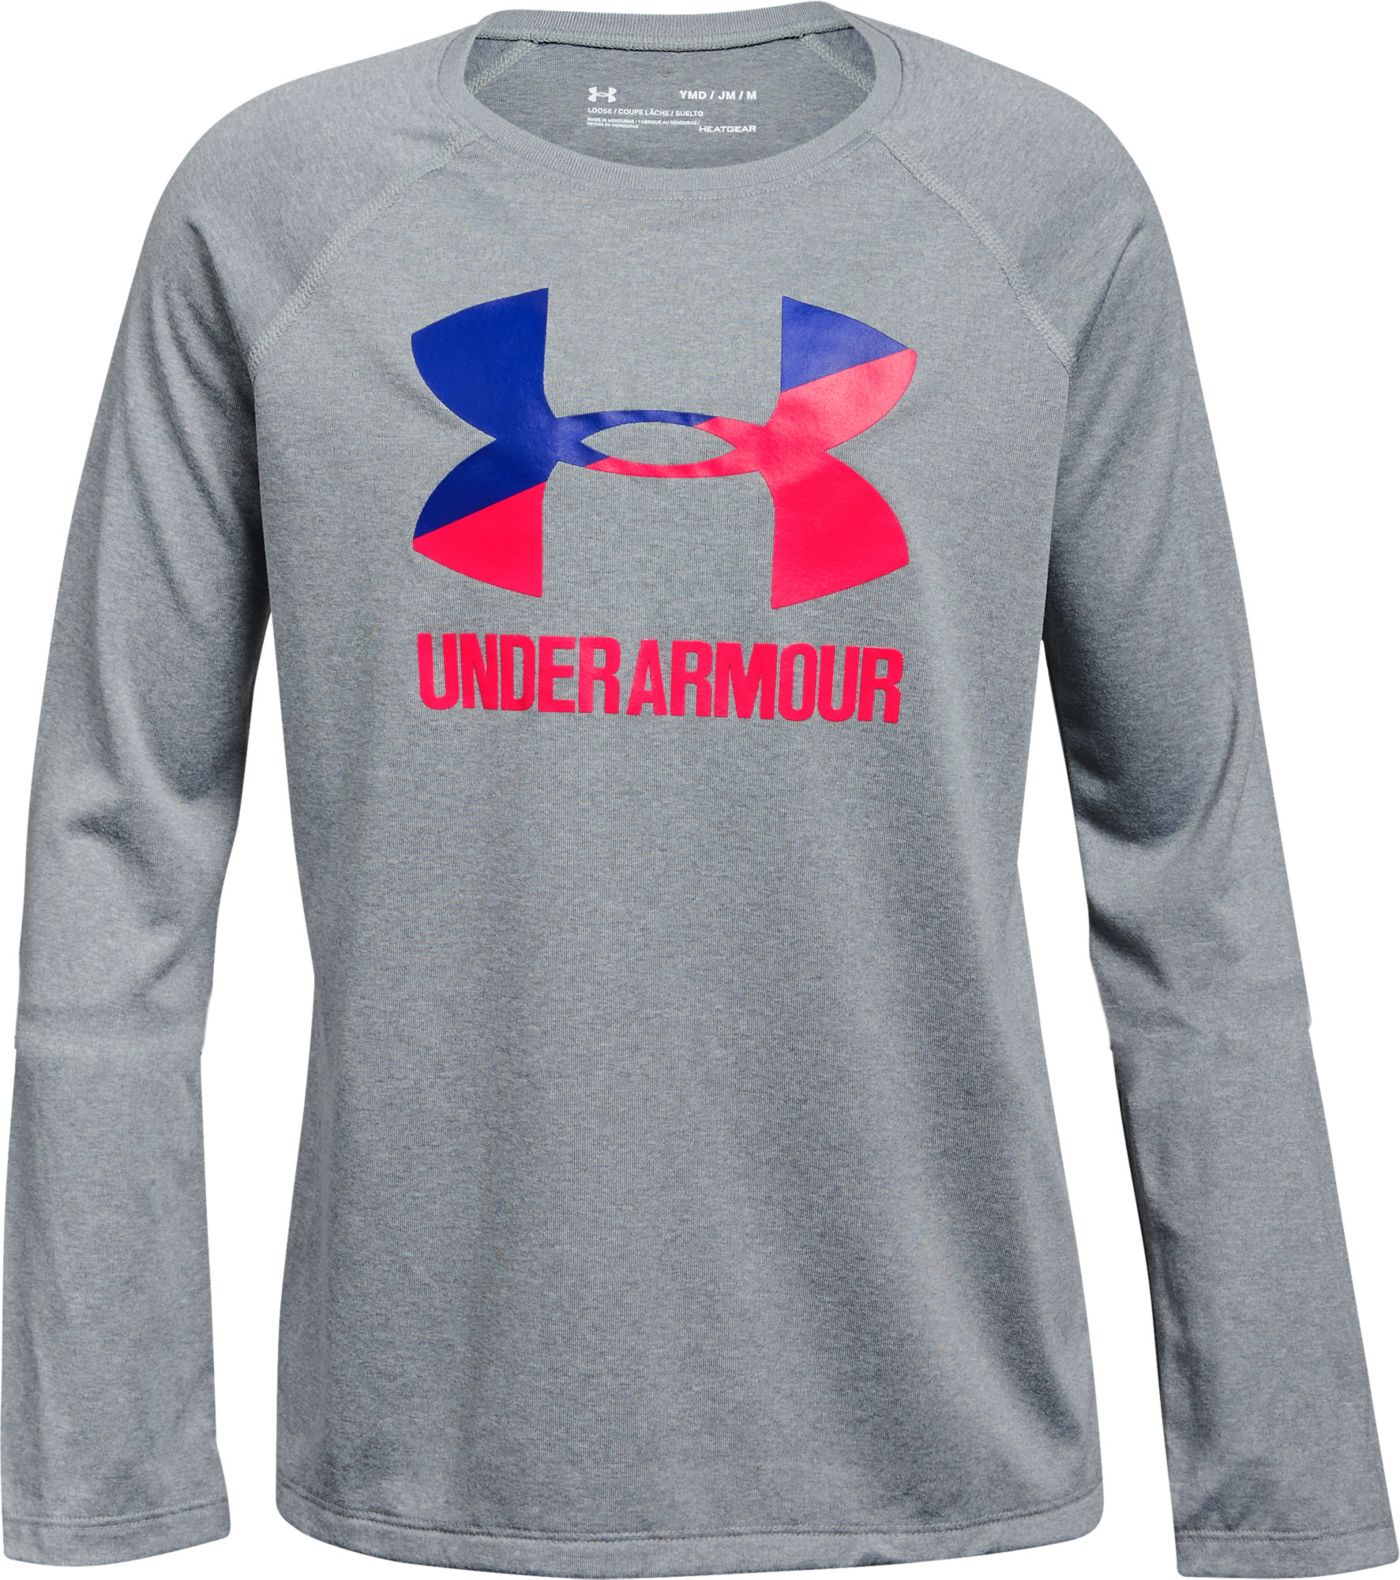 Under Armour Girls' Big Logo Graphic Long Sleeve Shirt